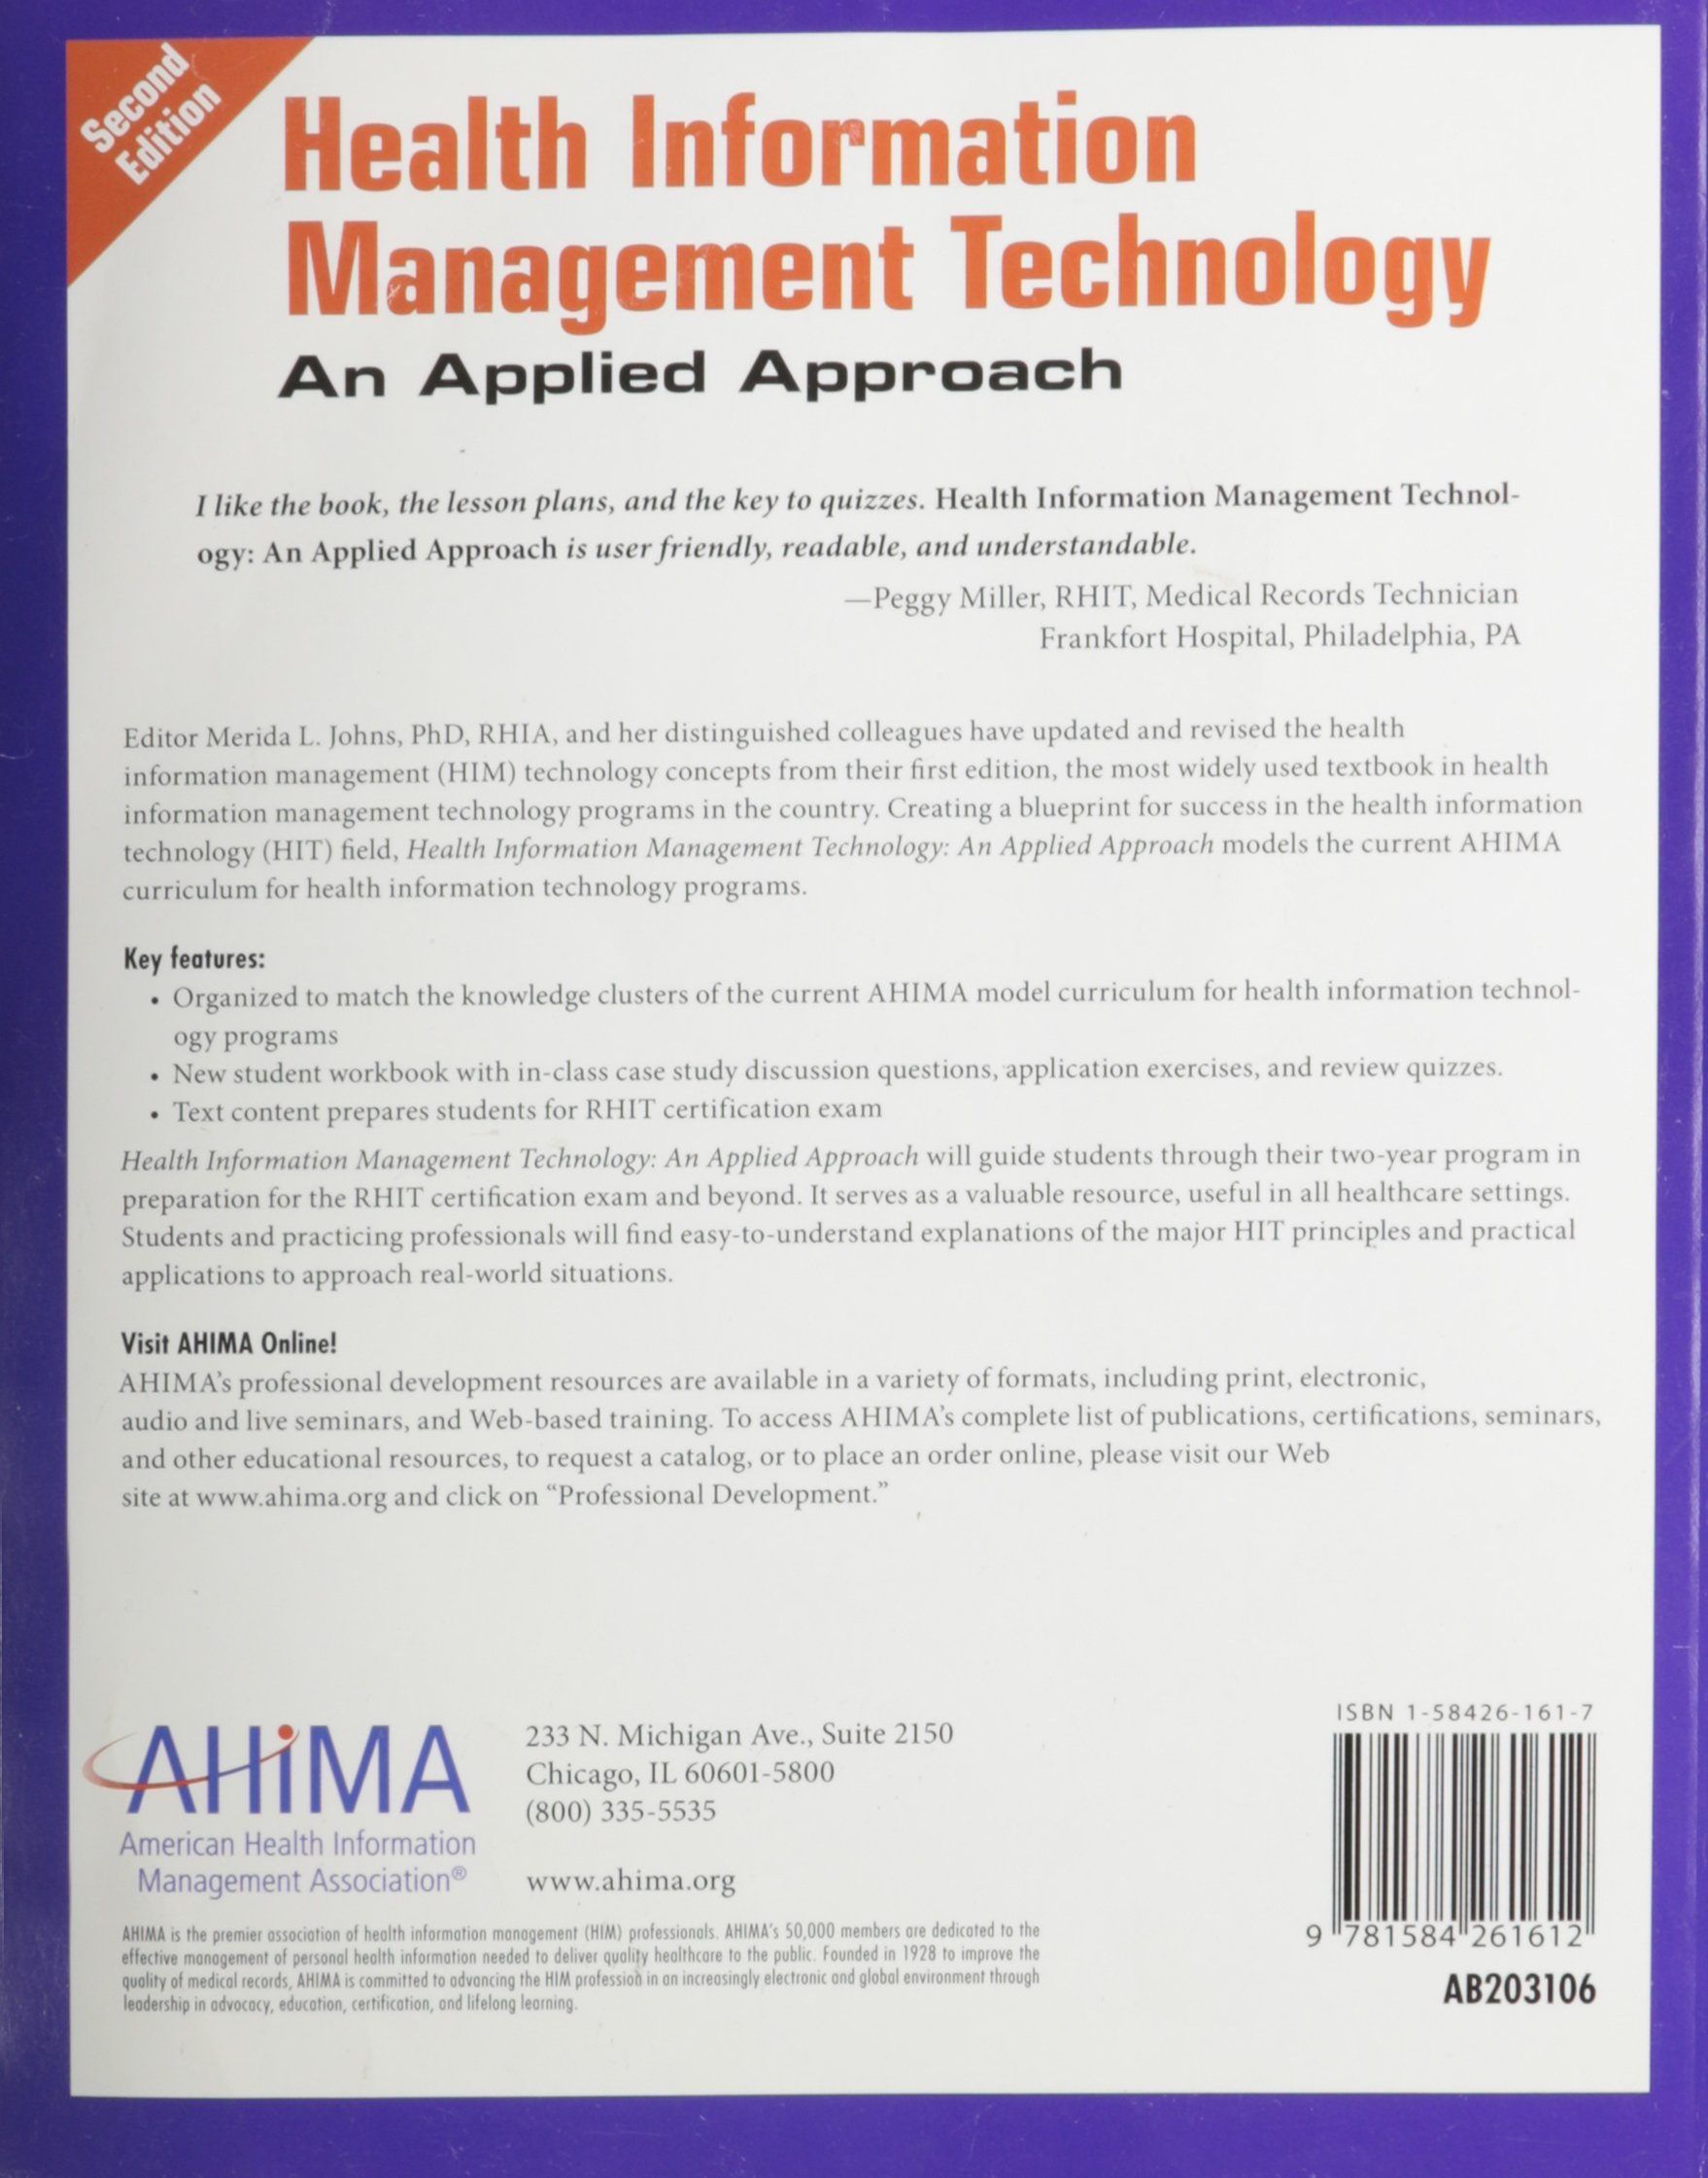 Amazon buy student workbook for health information management amazon buy student workbook for health information management technology an applied approach edition second book online at low prices in india xflitez Choice Image